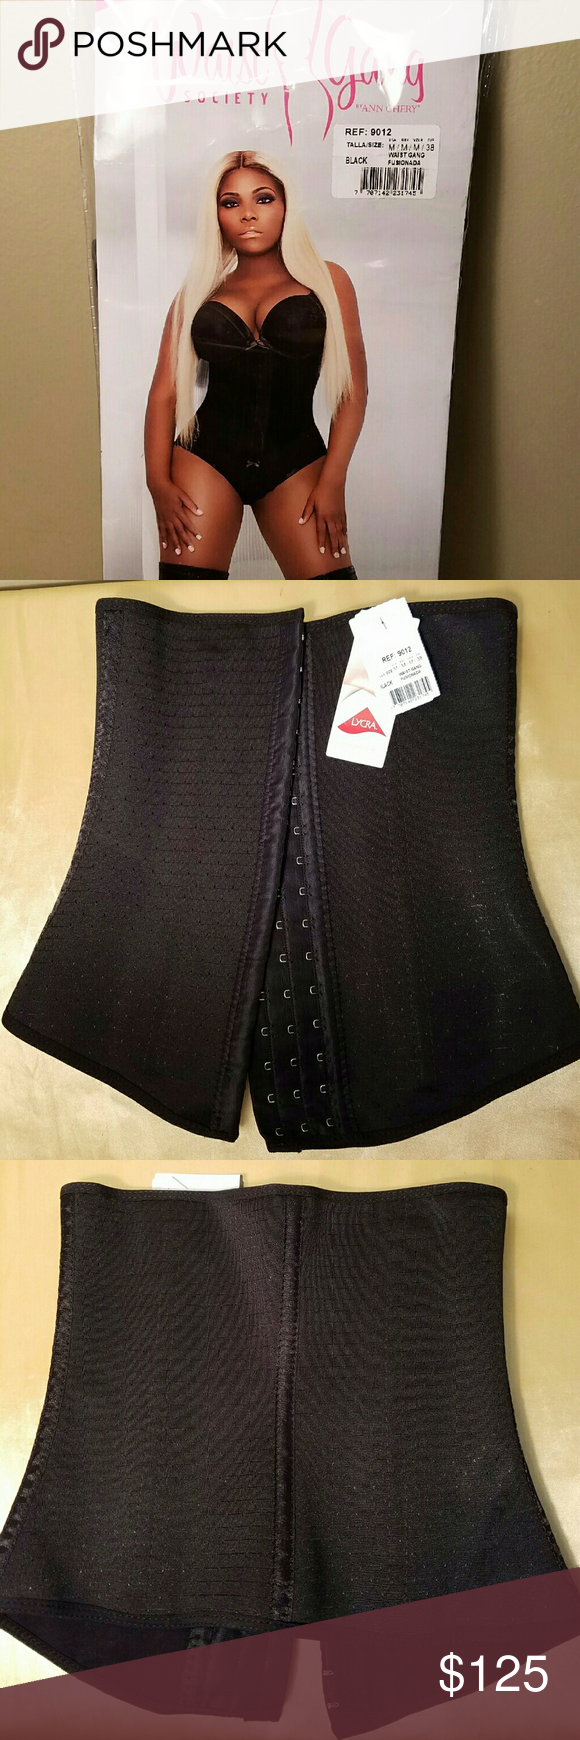 b01a698ada Waist Gang Society Miracle Trainer. Brand new with tags. Never worn.  Intimates   Sleepwear Shapewear